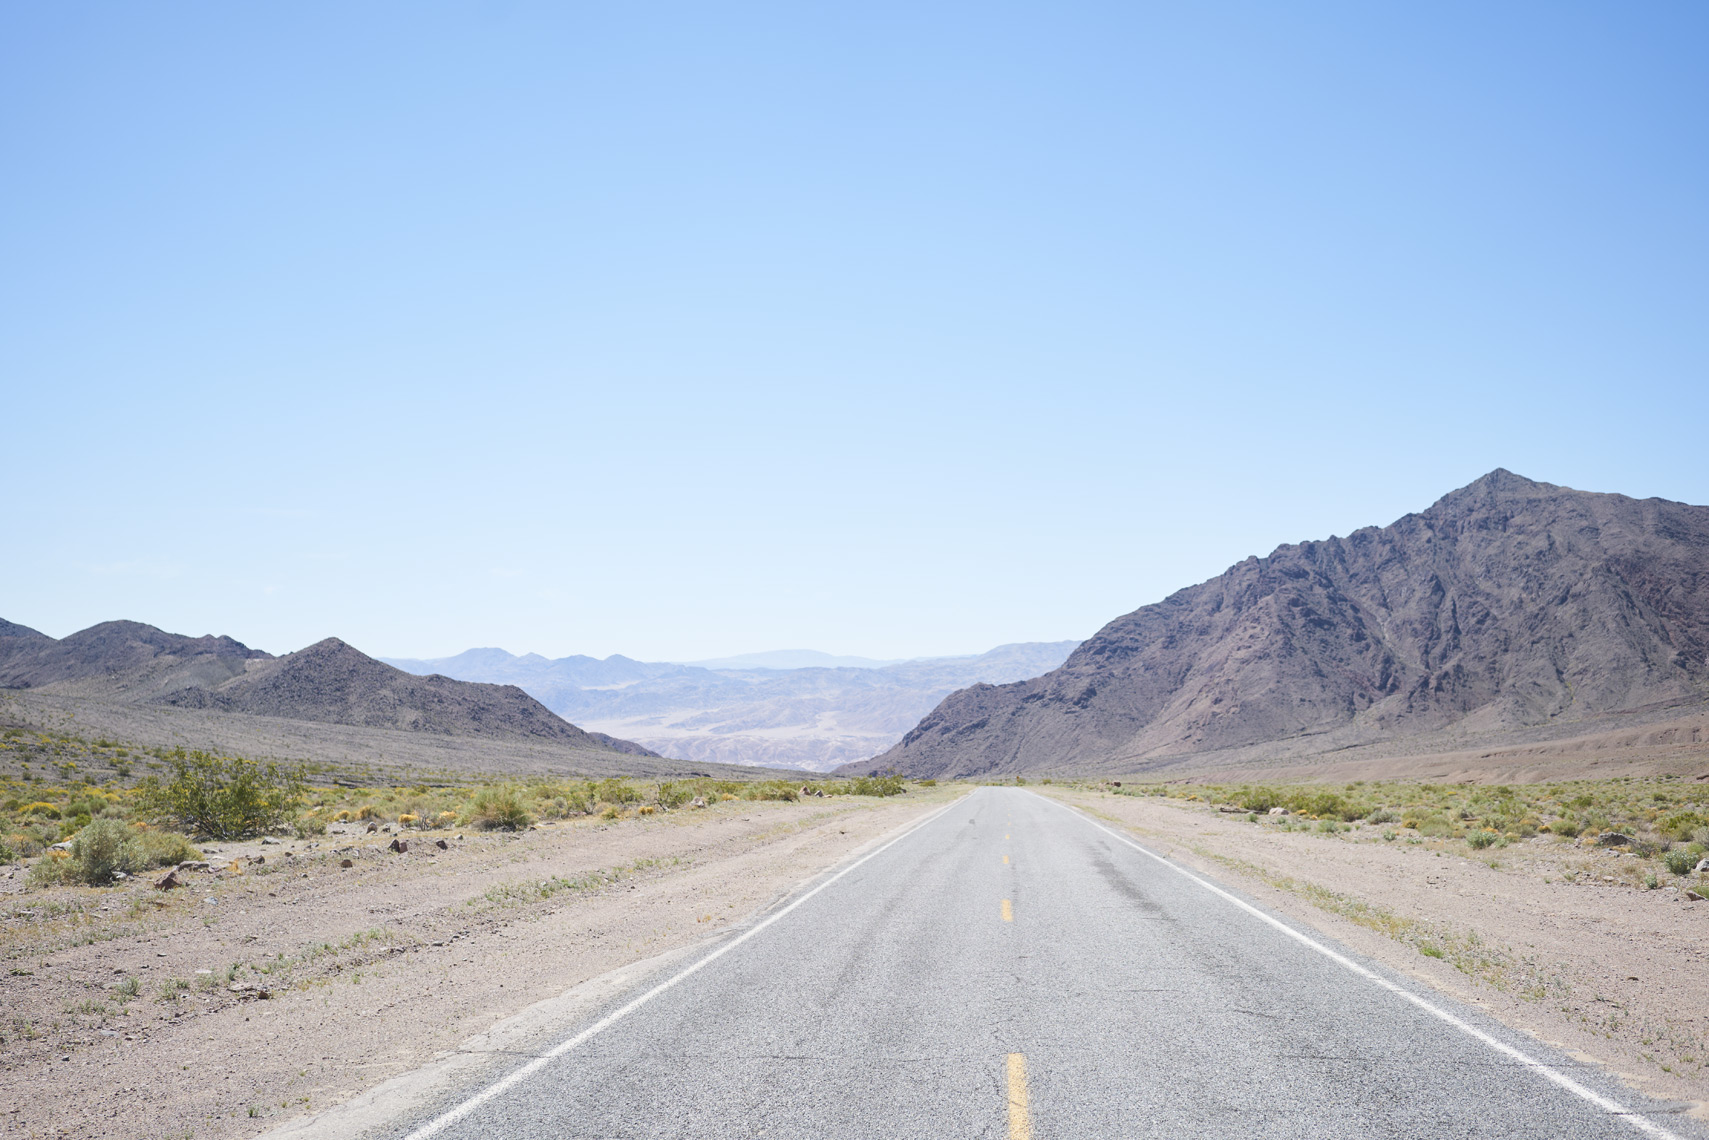 Road through Death Valley National Park Sean Dagen Photography